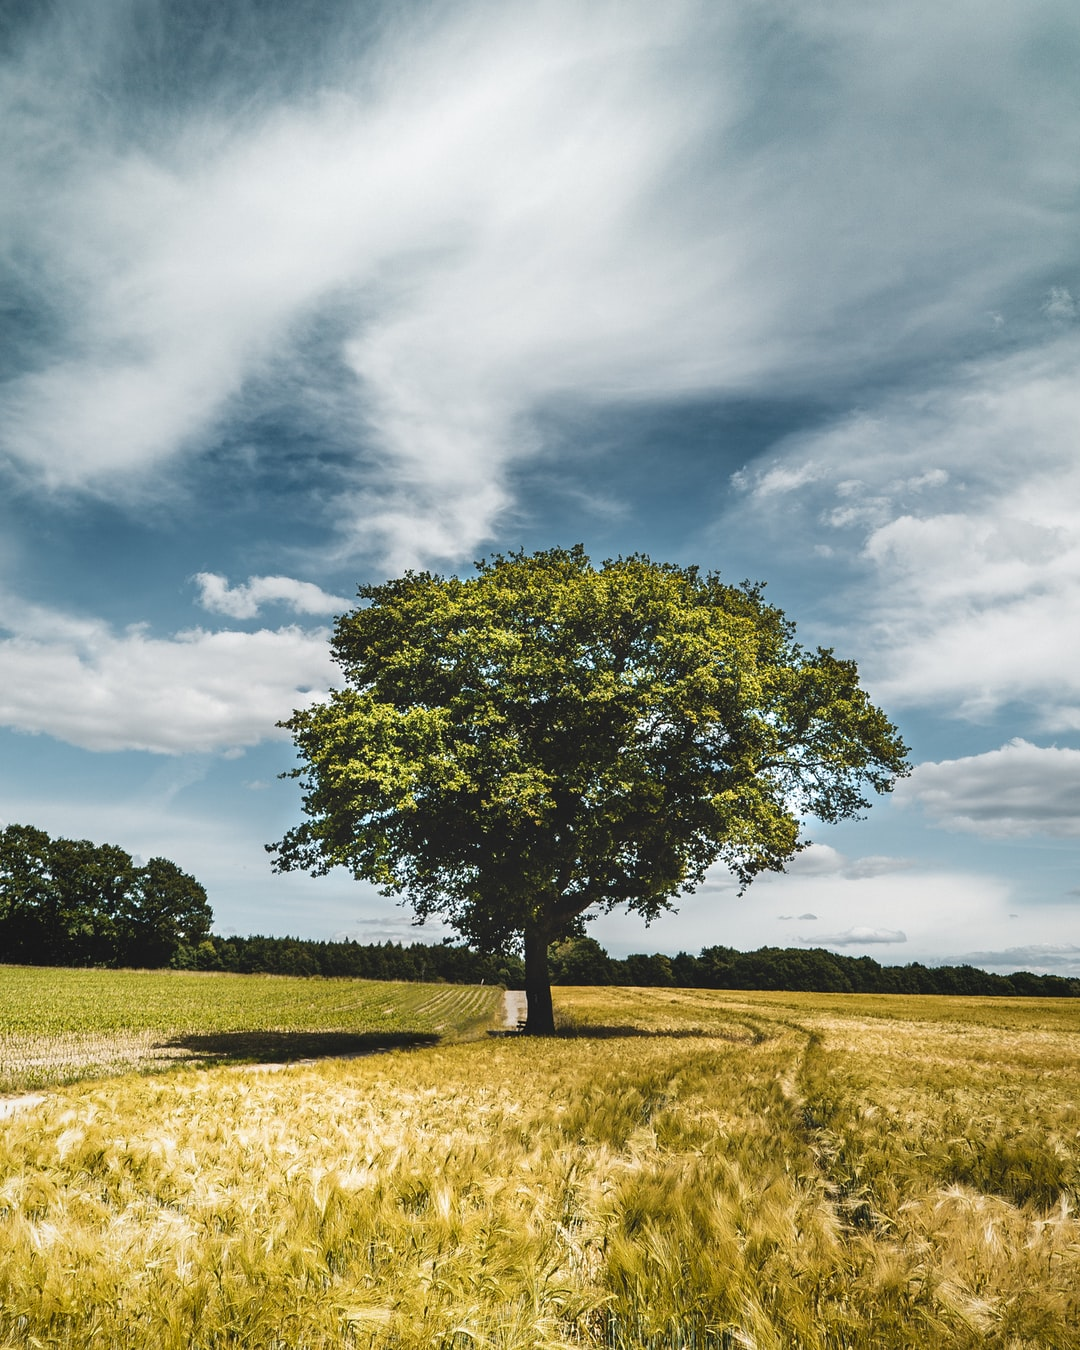 A single tree in the middle of giant wheat fields, completely untouched by humankind.